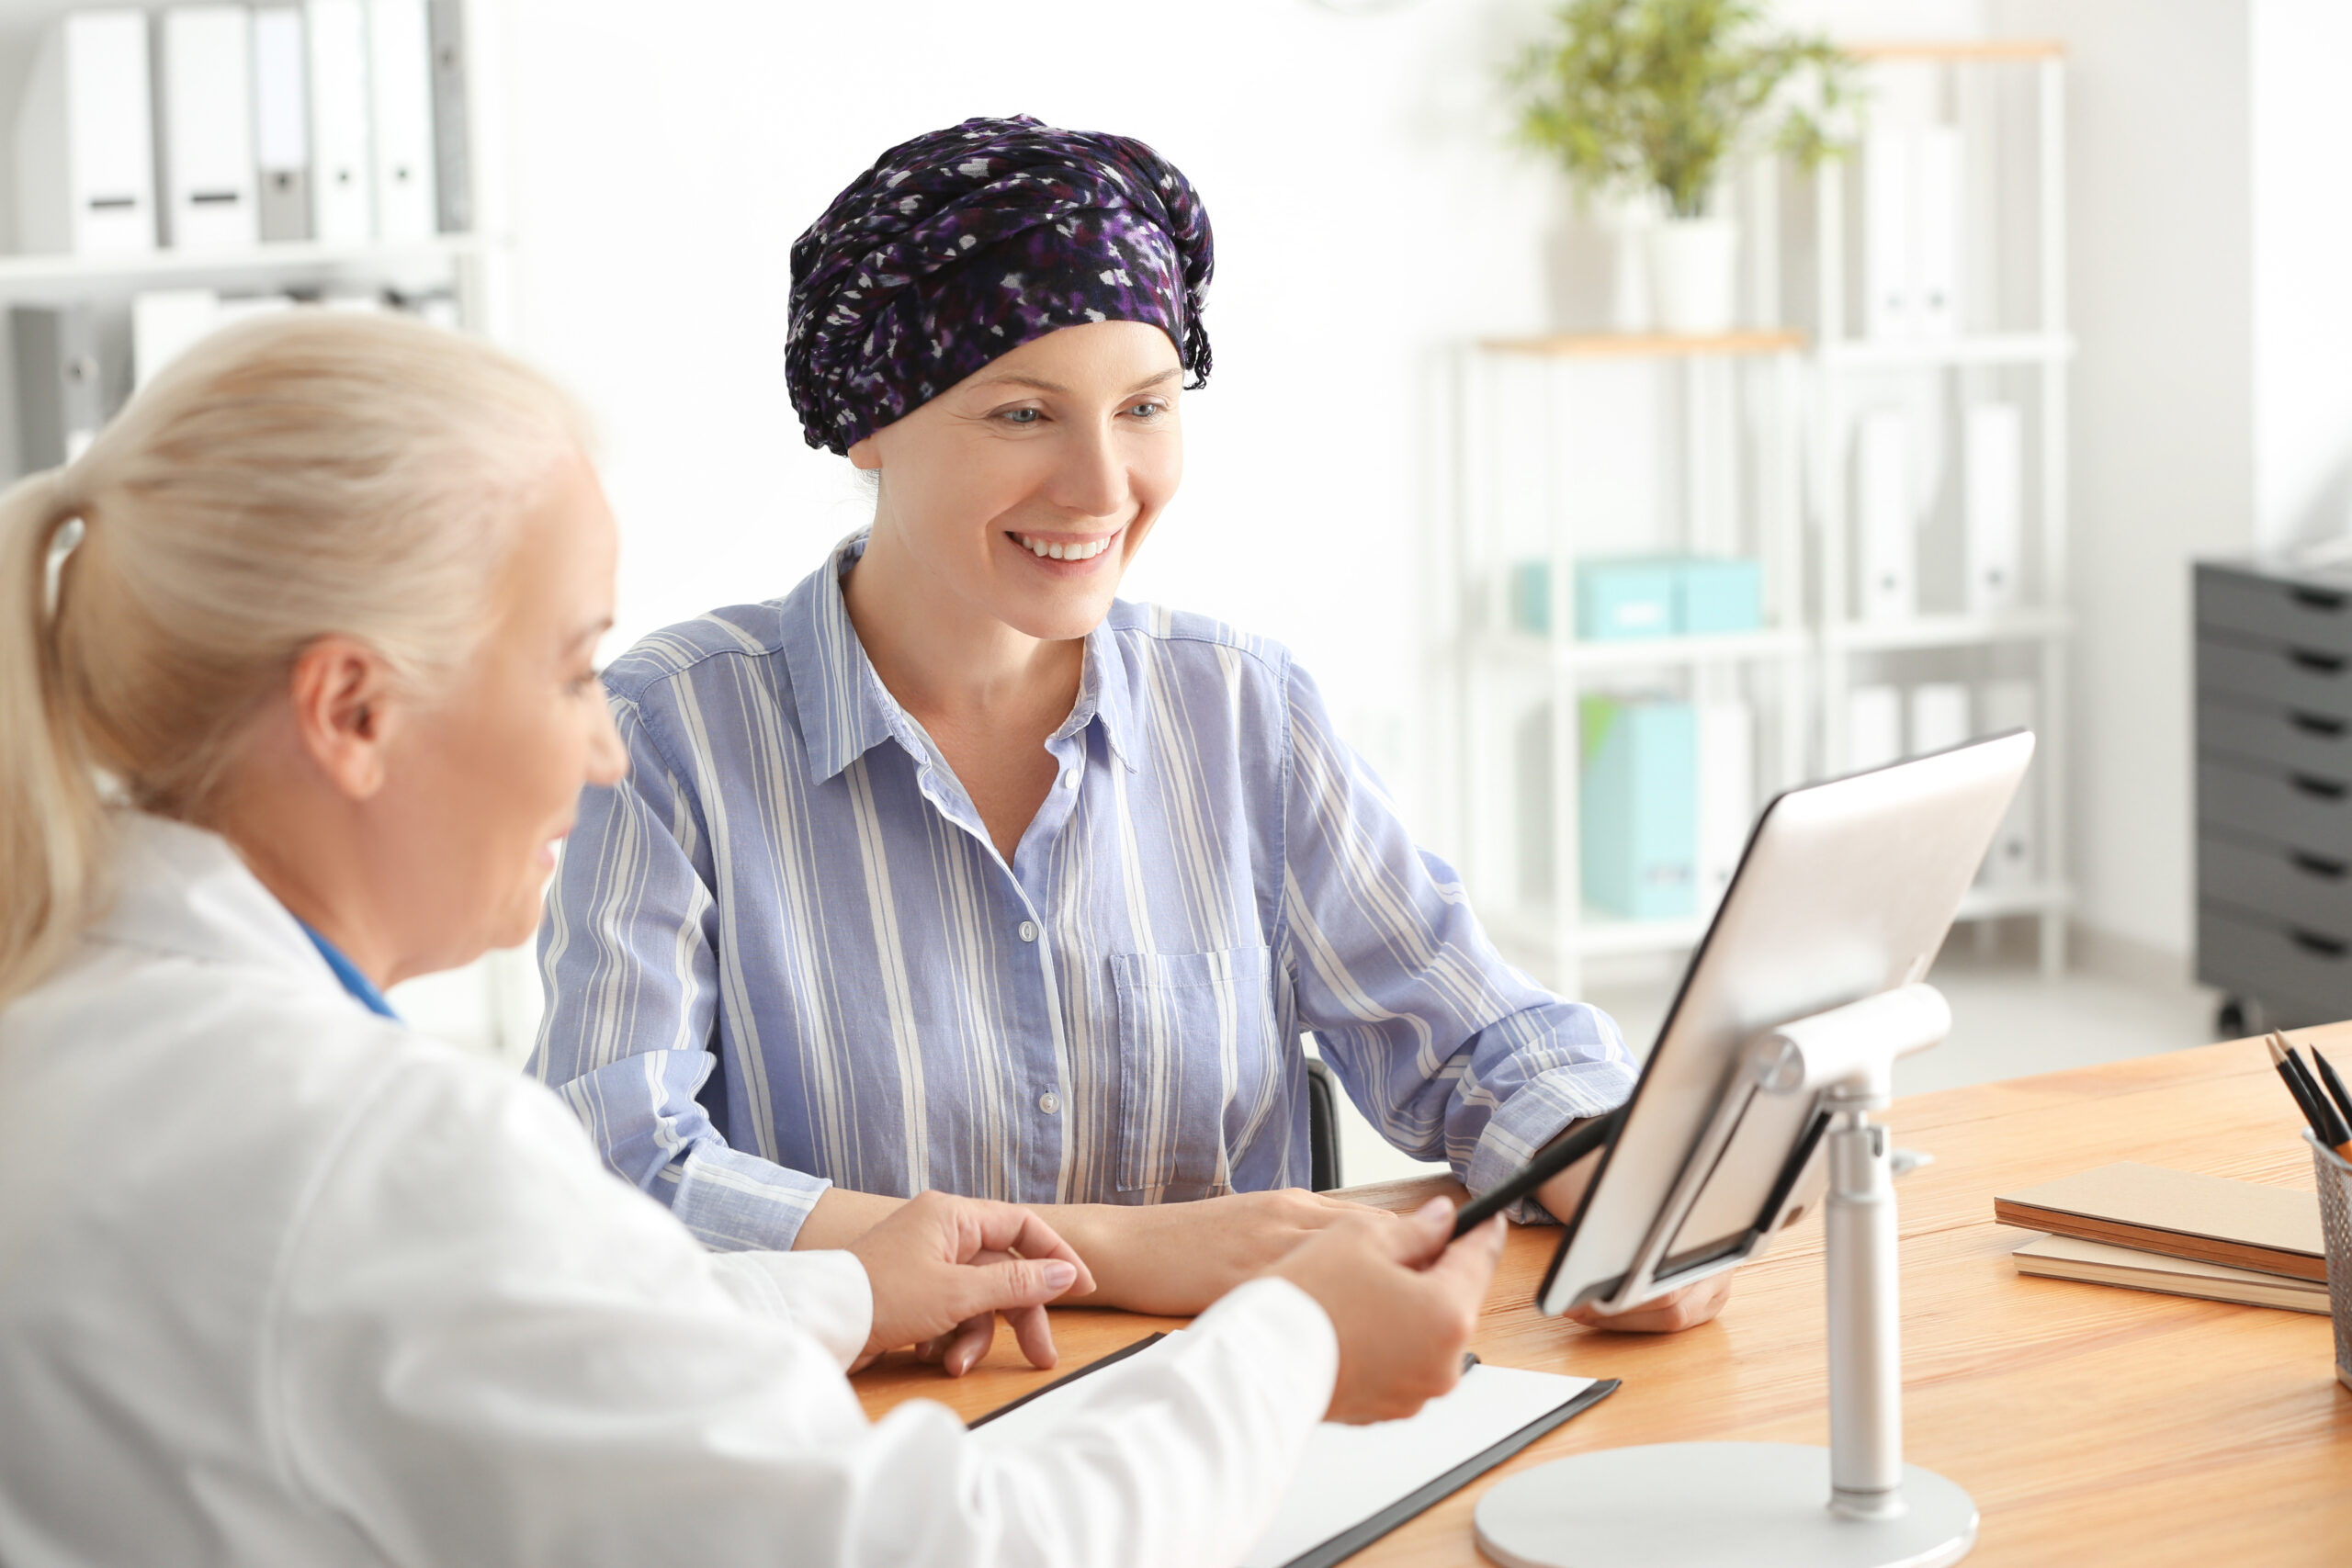 Pain Points You Should Address When Selecting Care Coordination Software